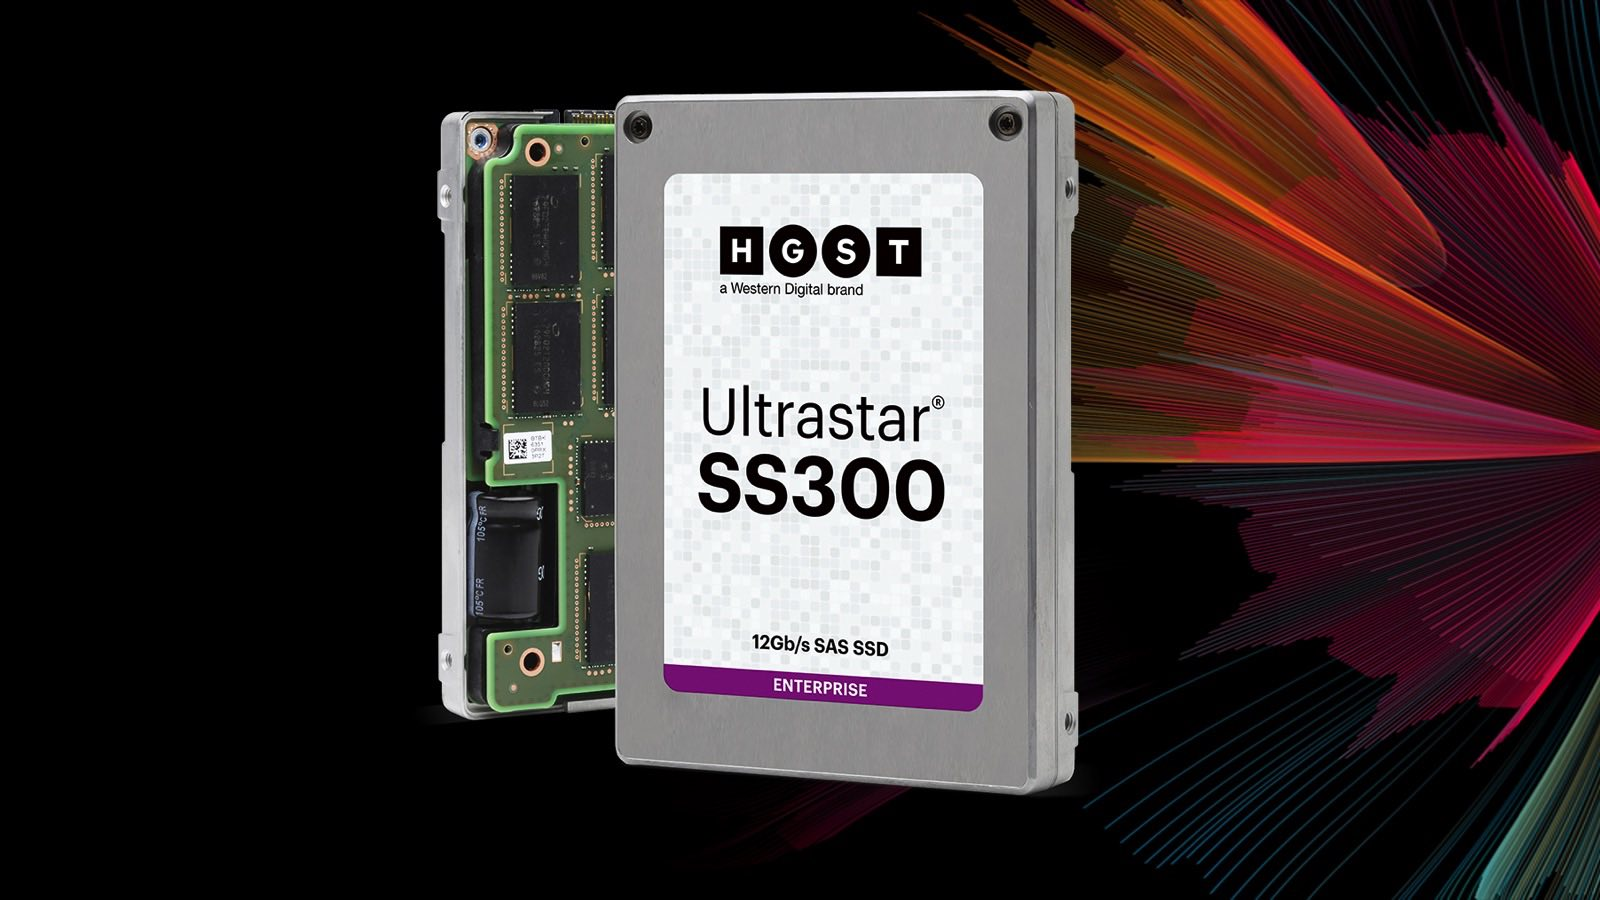 The Ultrastar® SS300 – Our Highest-Performing SAS SSD to Date